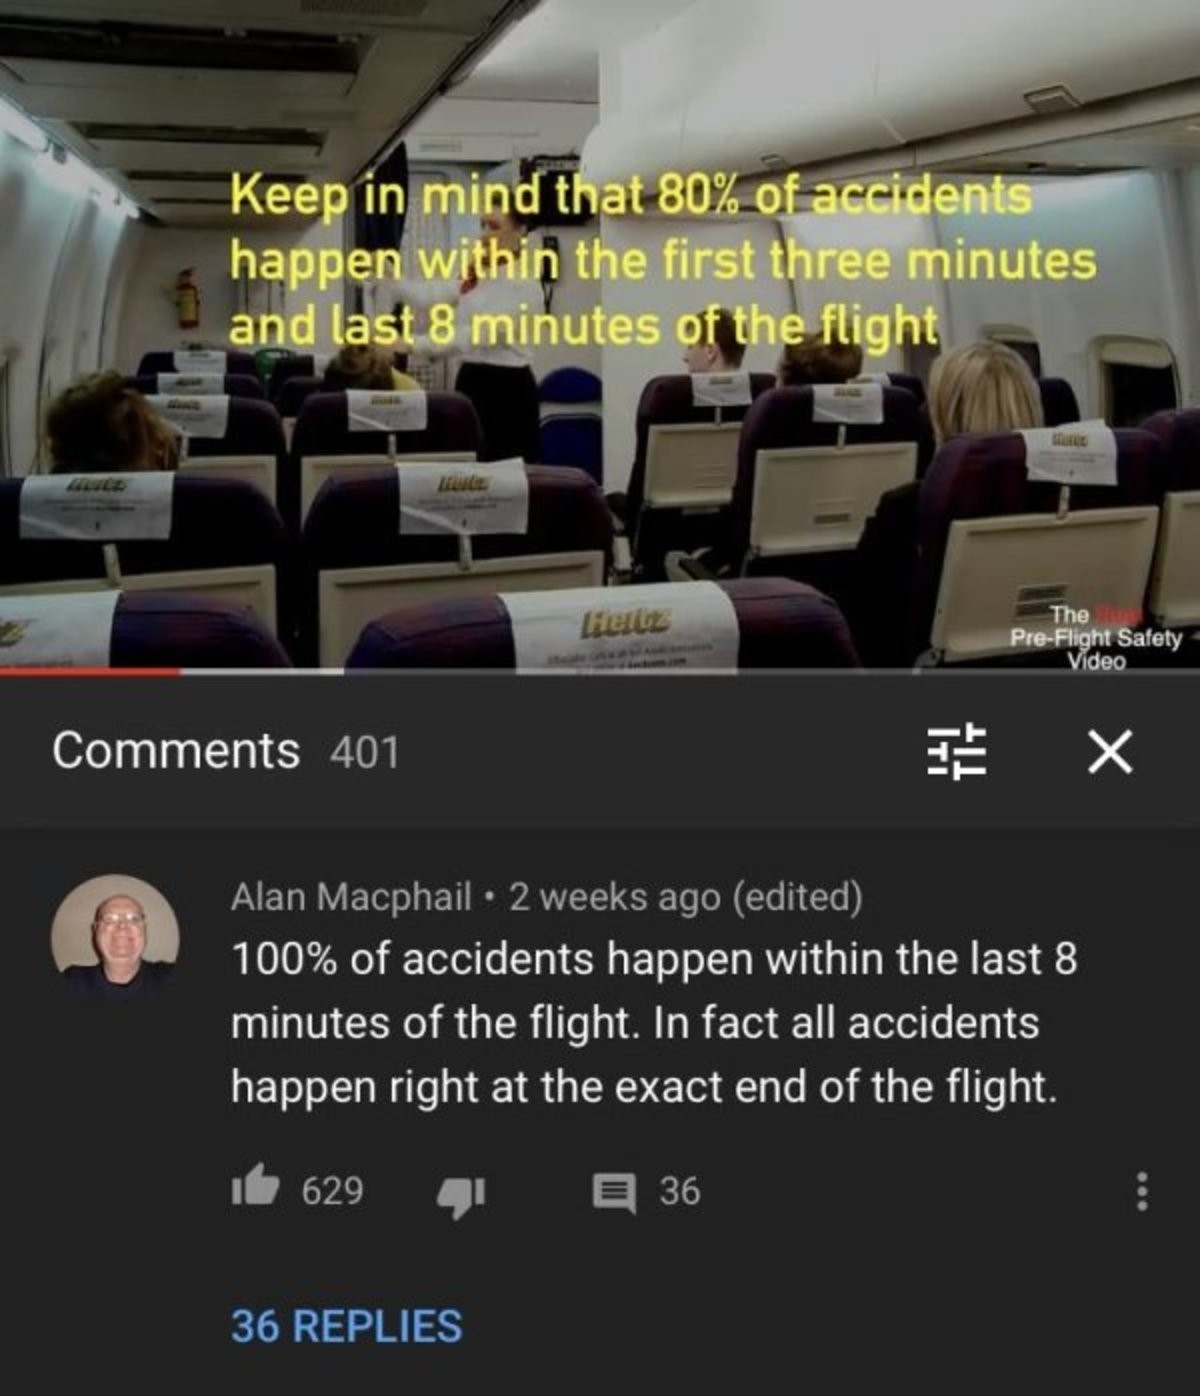 consequential Louse. .. Really bad ones maybe, but planes are pretty good at redundant safety measures.